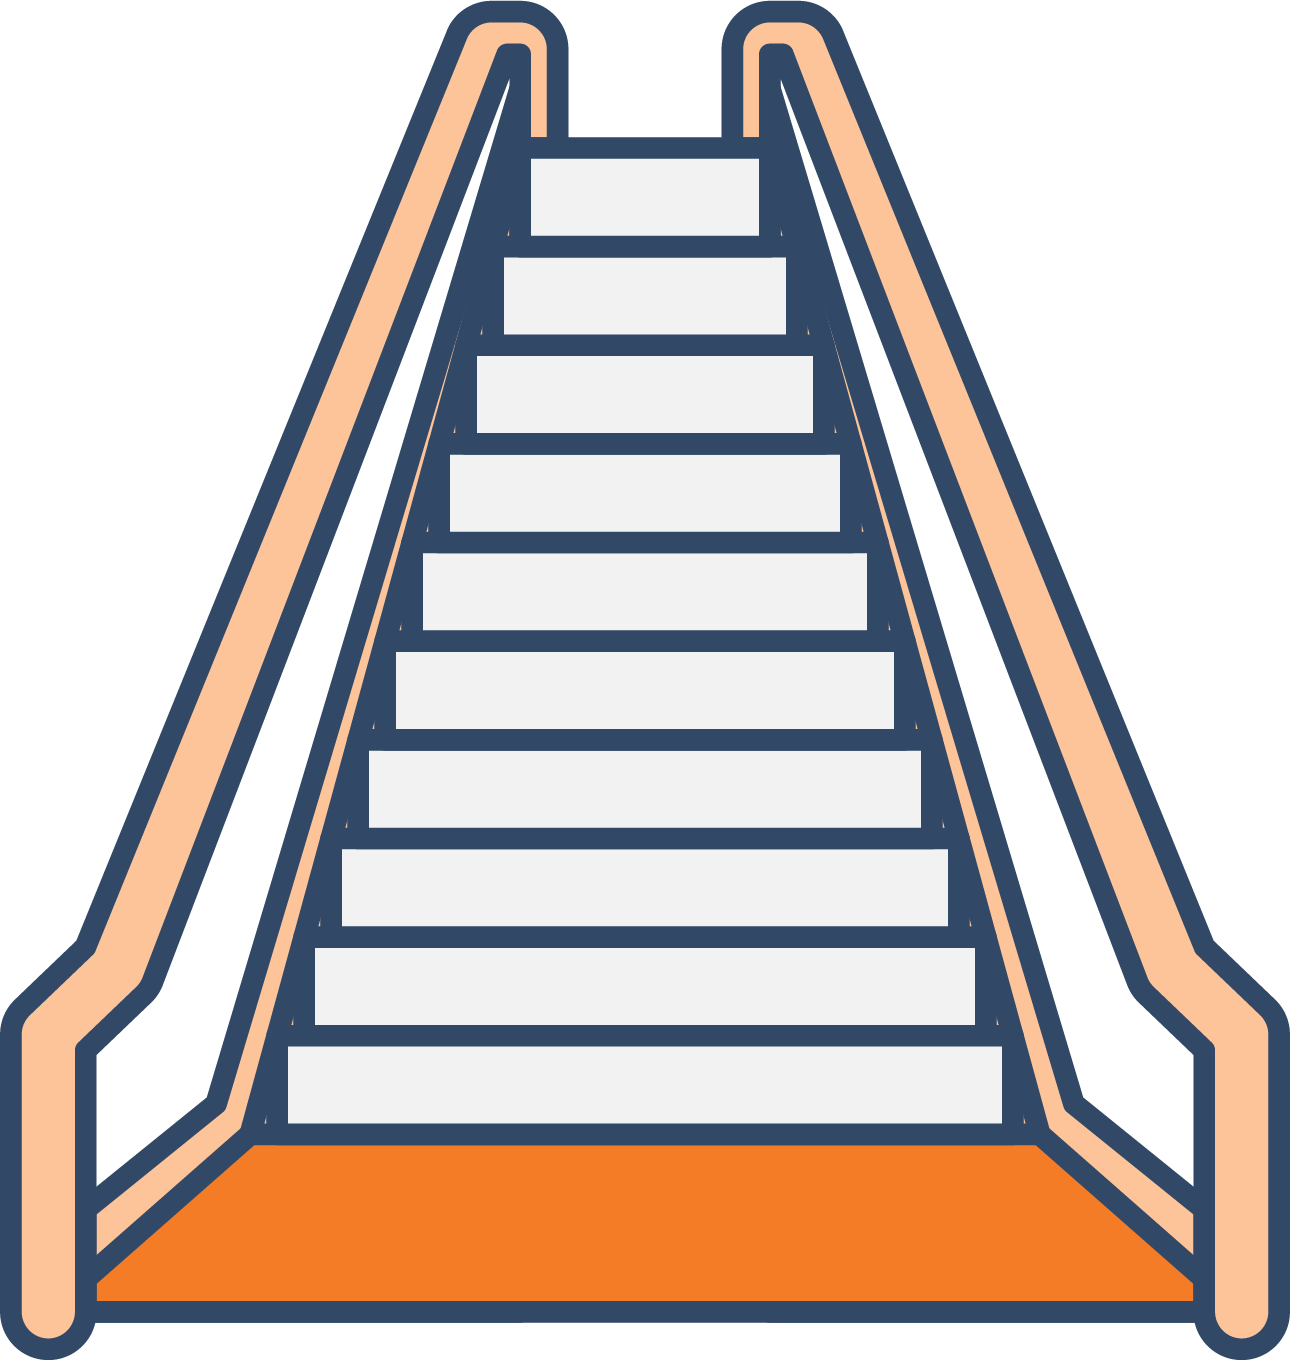 Escalator stairs icon up. Clipart castle staircase